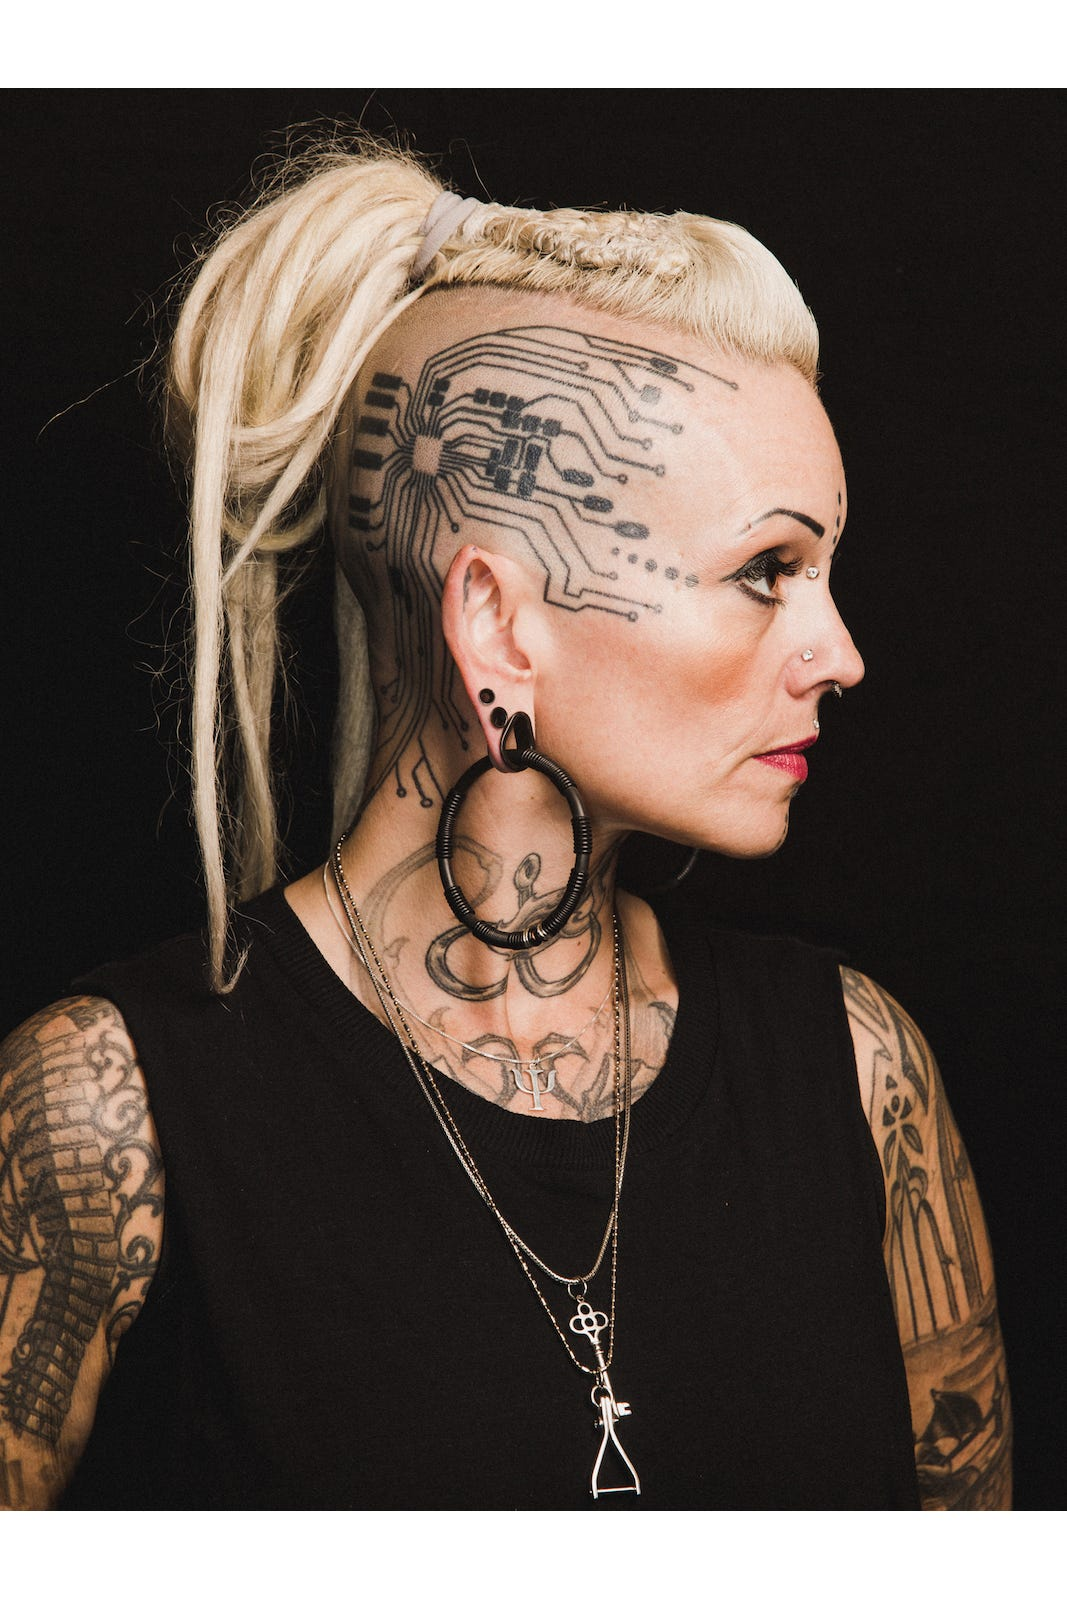 Extreme Body Modification - Tattoos, Implants, Piercing